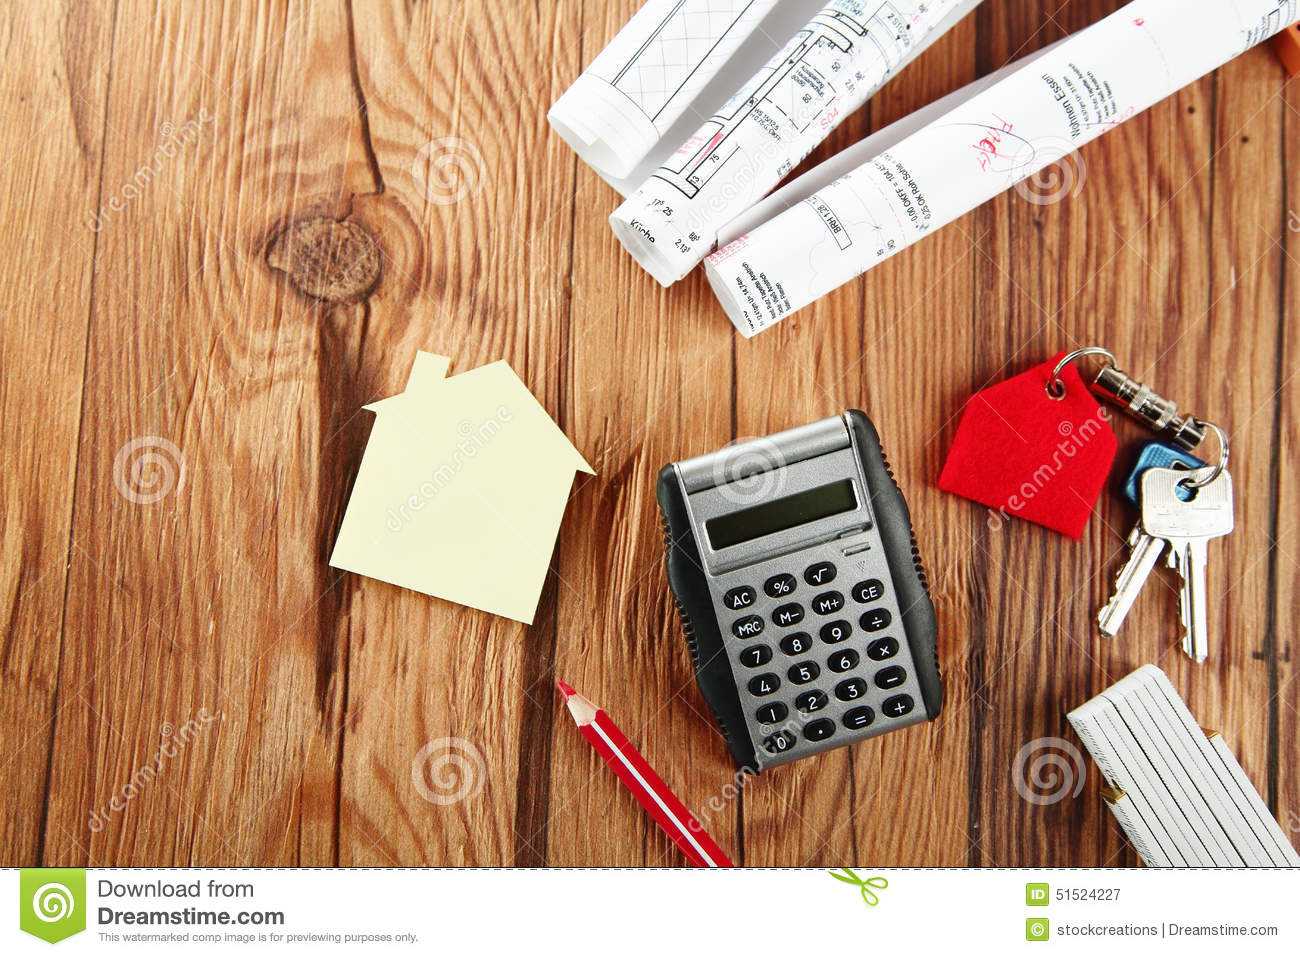 Mini house sketch keys and calculator on table stock for Build new house calculator